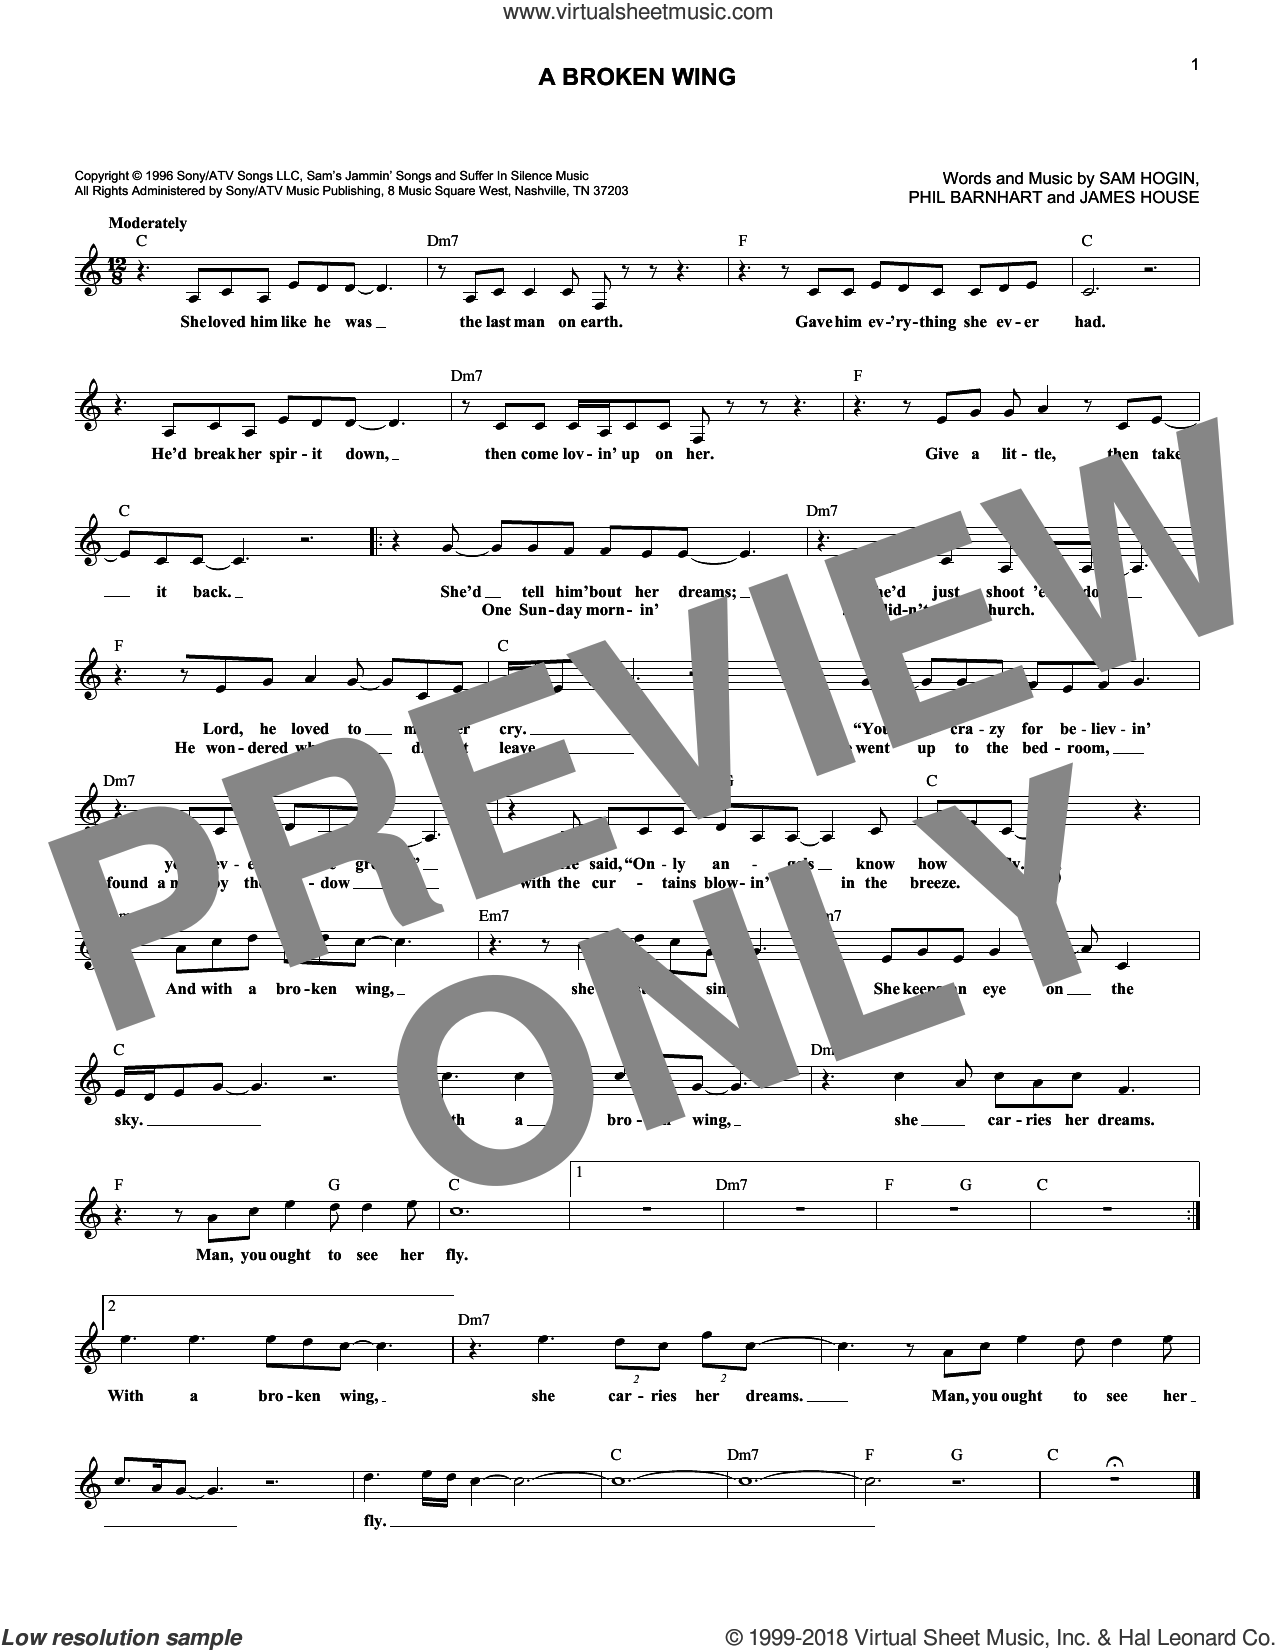 A Broken Wing sheet music for voice and other instruments (fake book) by Martina McBride, Jordin Sparks, James House, Phil Barnhart and Sam Hogin, intermediate skill level